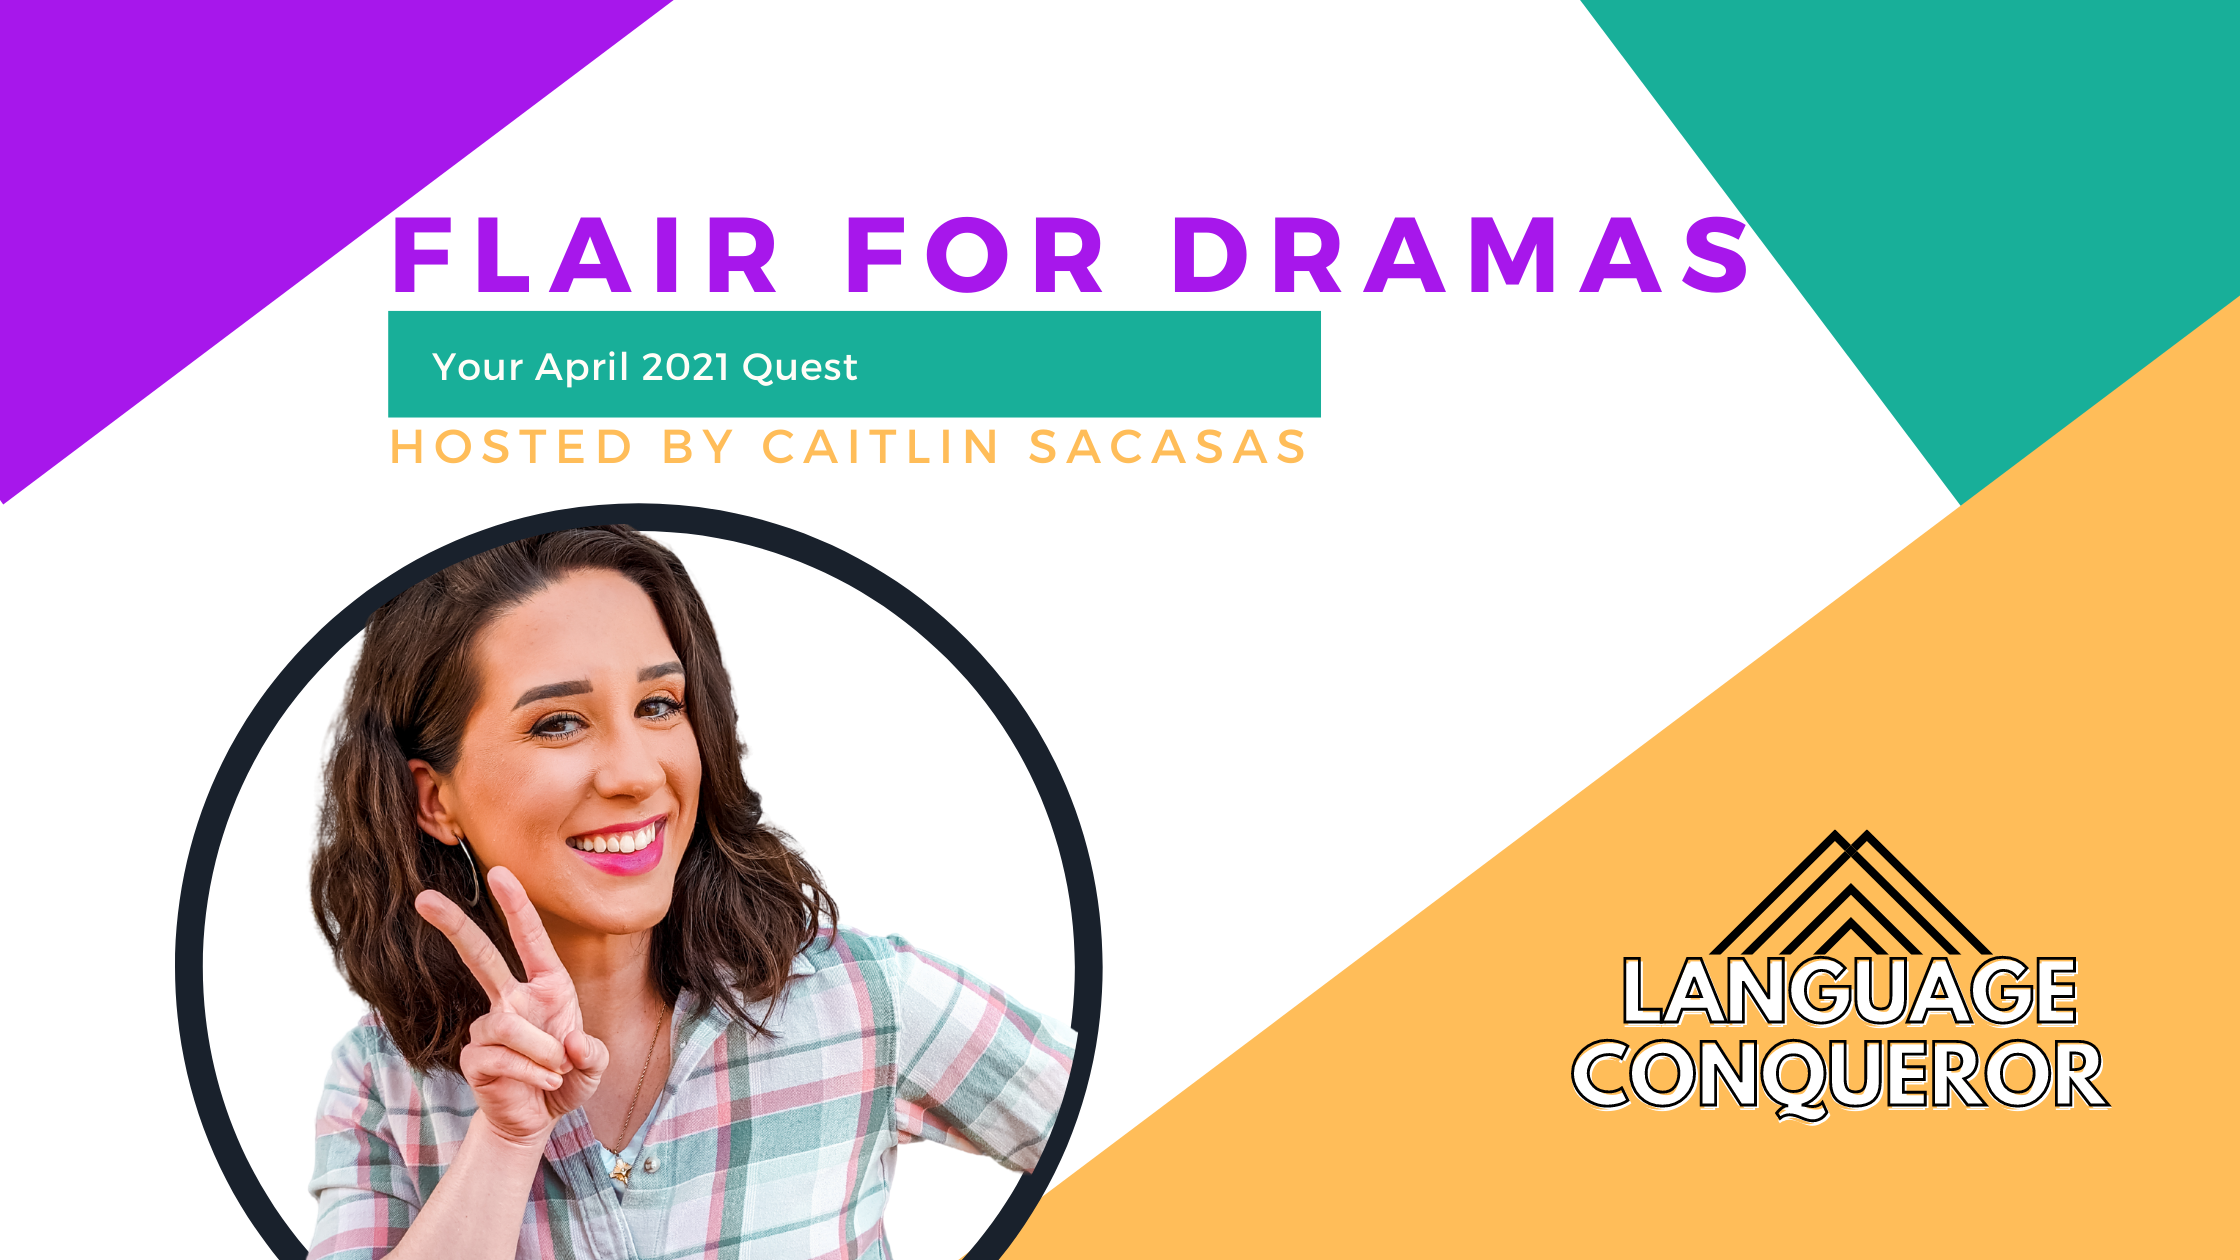 Flair for Dramas: Your April 2021 Quest Hosted by Caitlin Sacasas